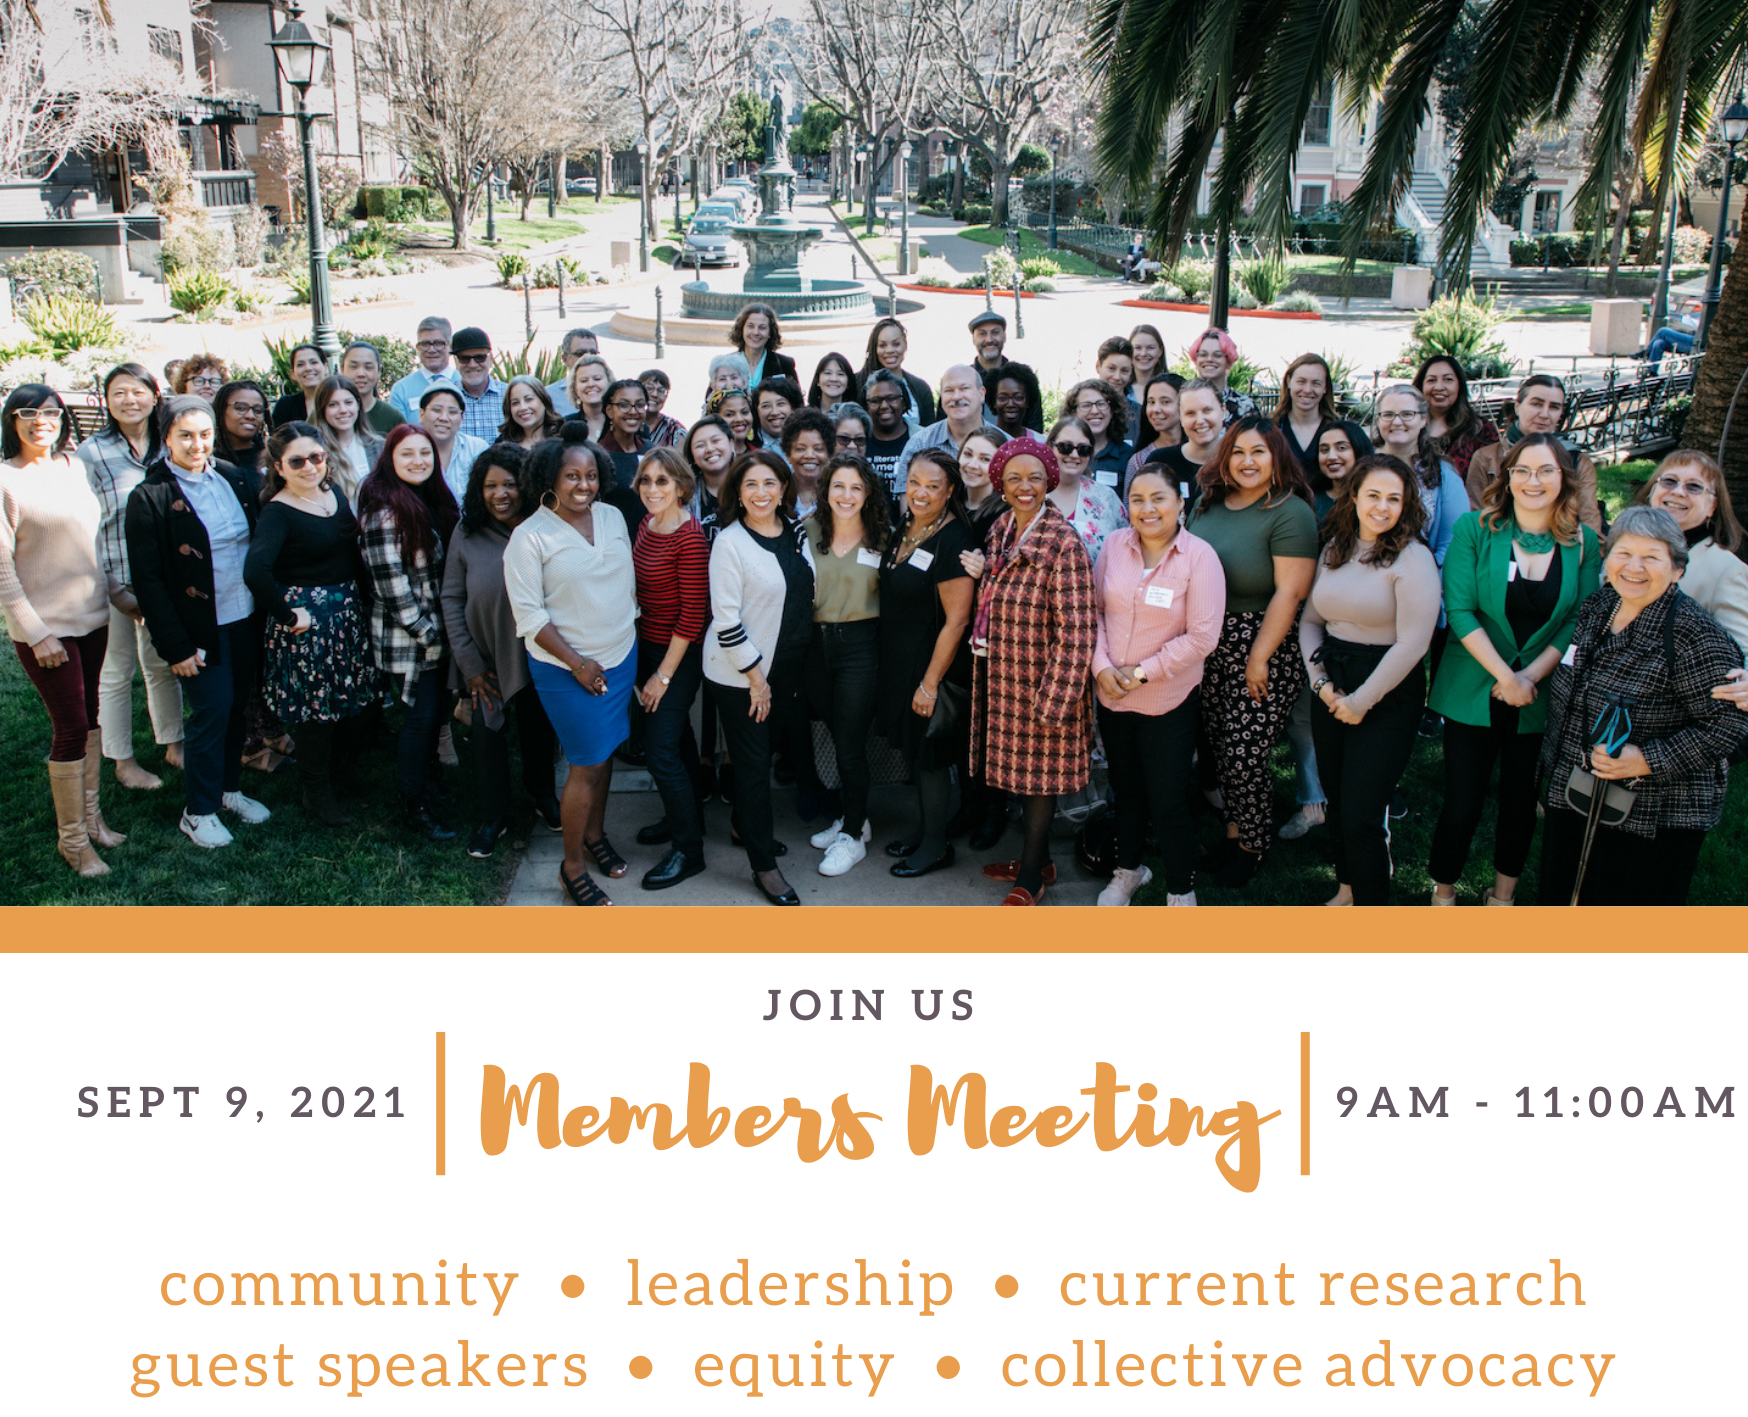 Event banner for Alliance for Girls' Annual Members Meeting on Sept 9th, 9-11am. Featuring a group photo from the February 2020 members meeting.